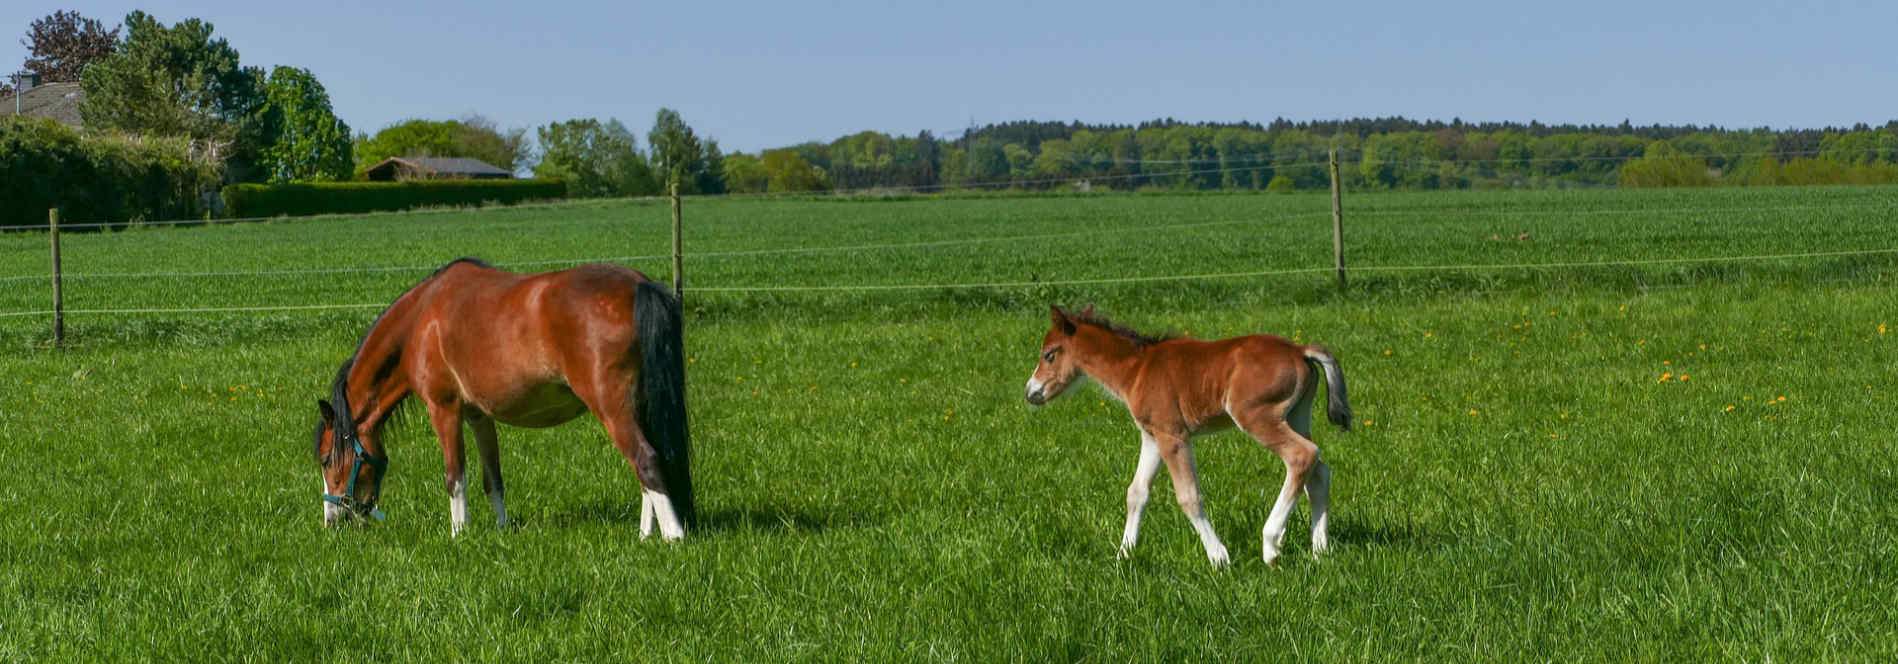 mare-and-foal-01.jpg